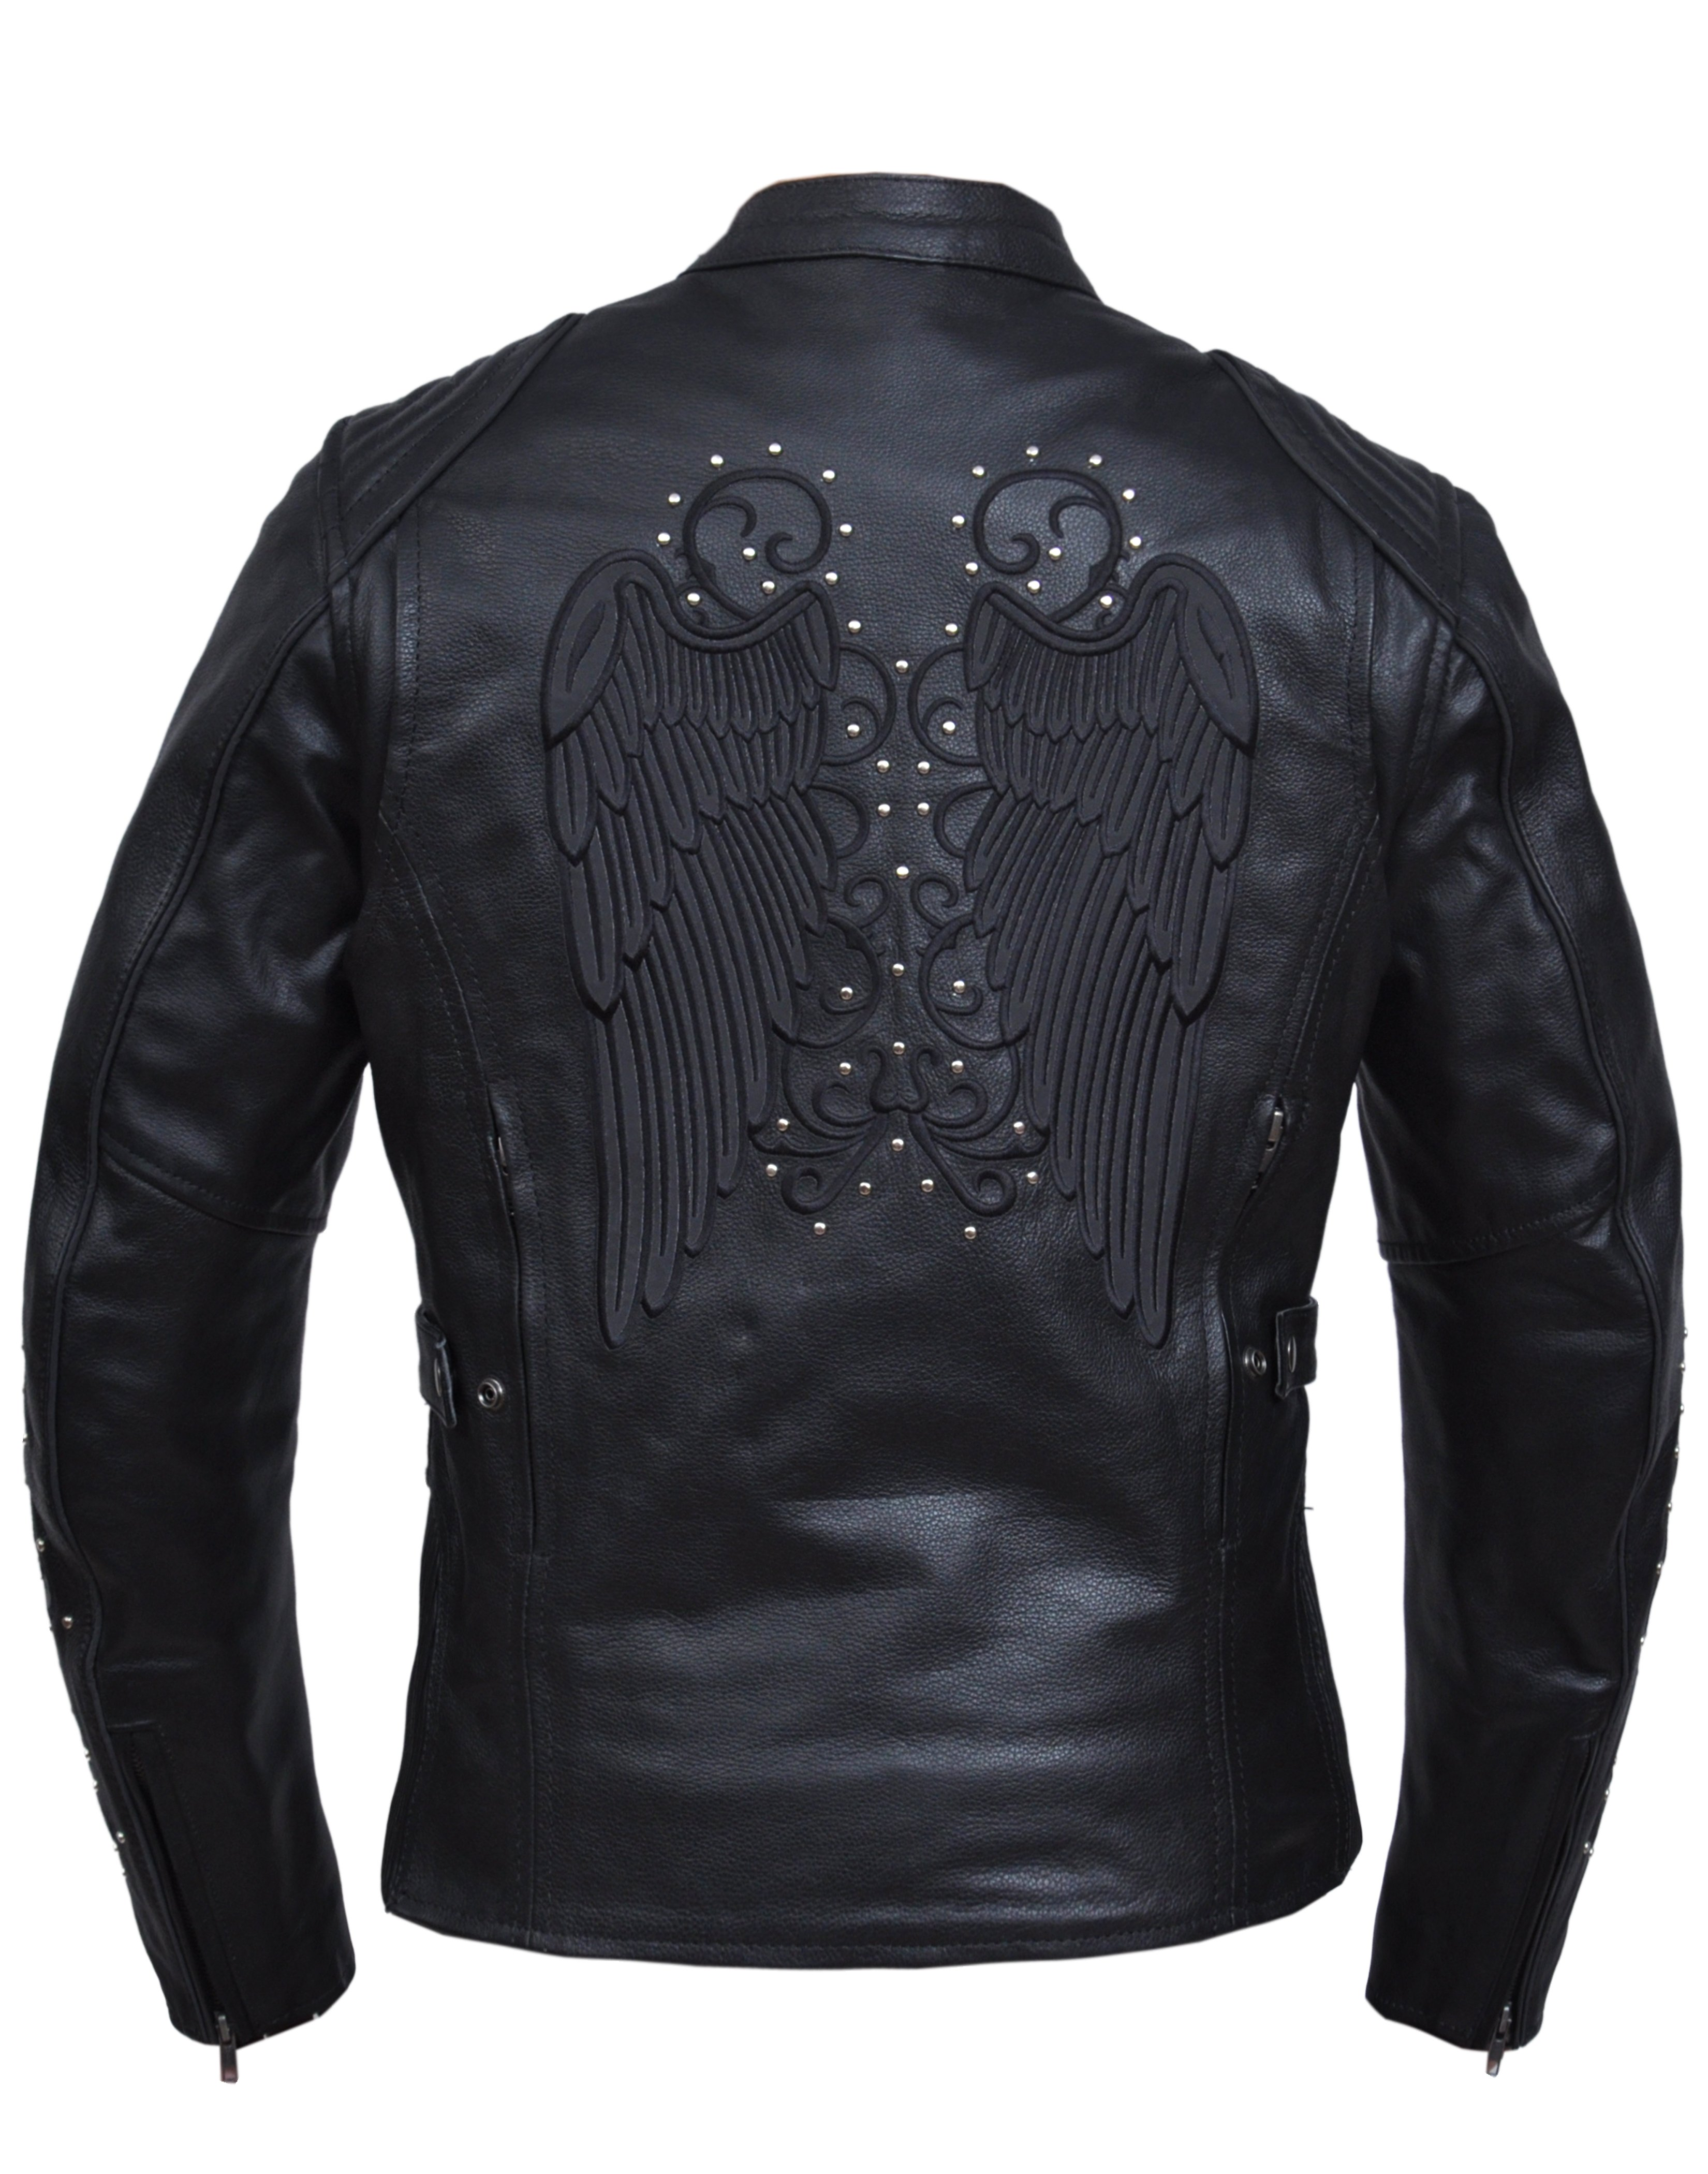 UNIK LADIES PREMIUM LEATHER JACKET 4